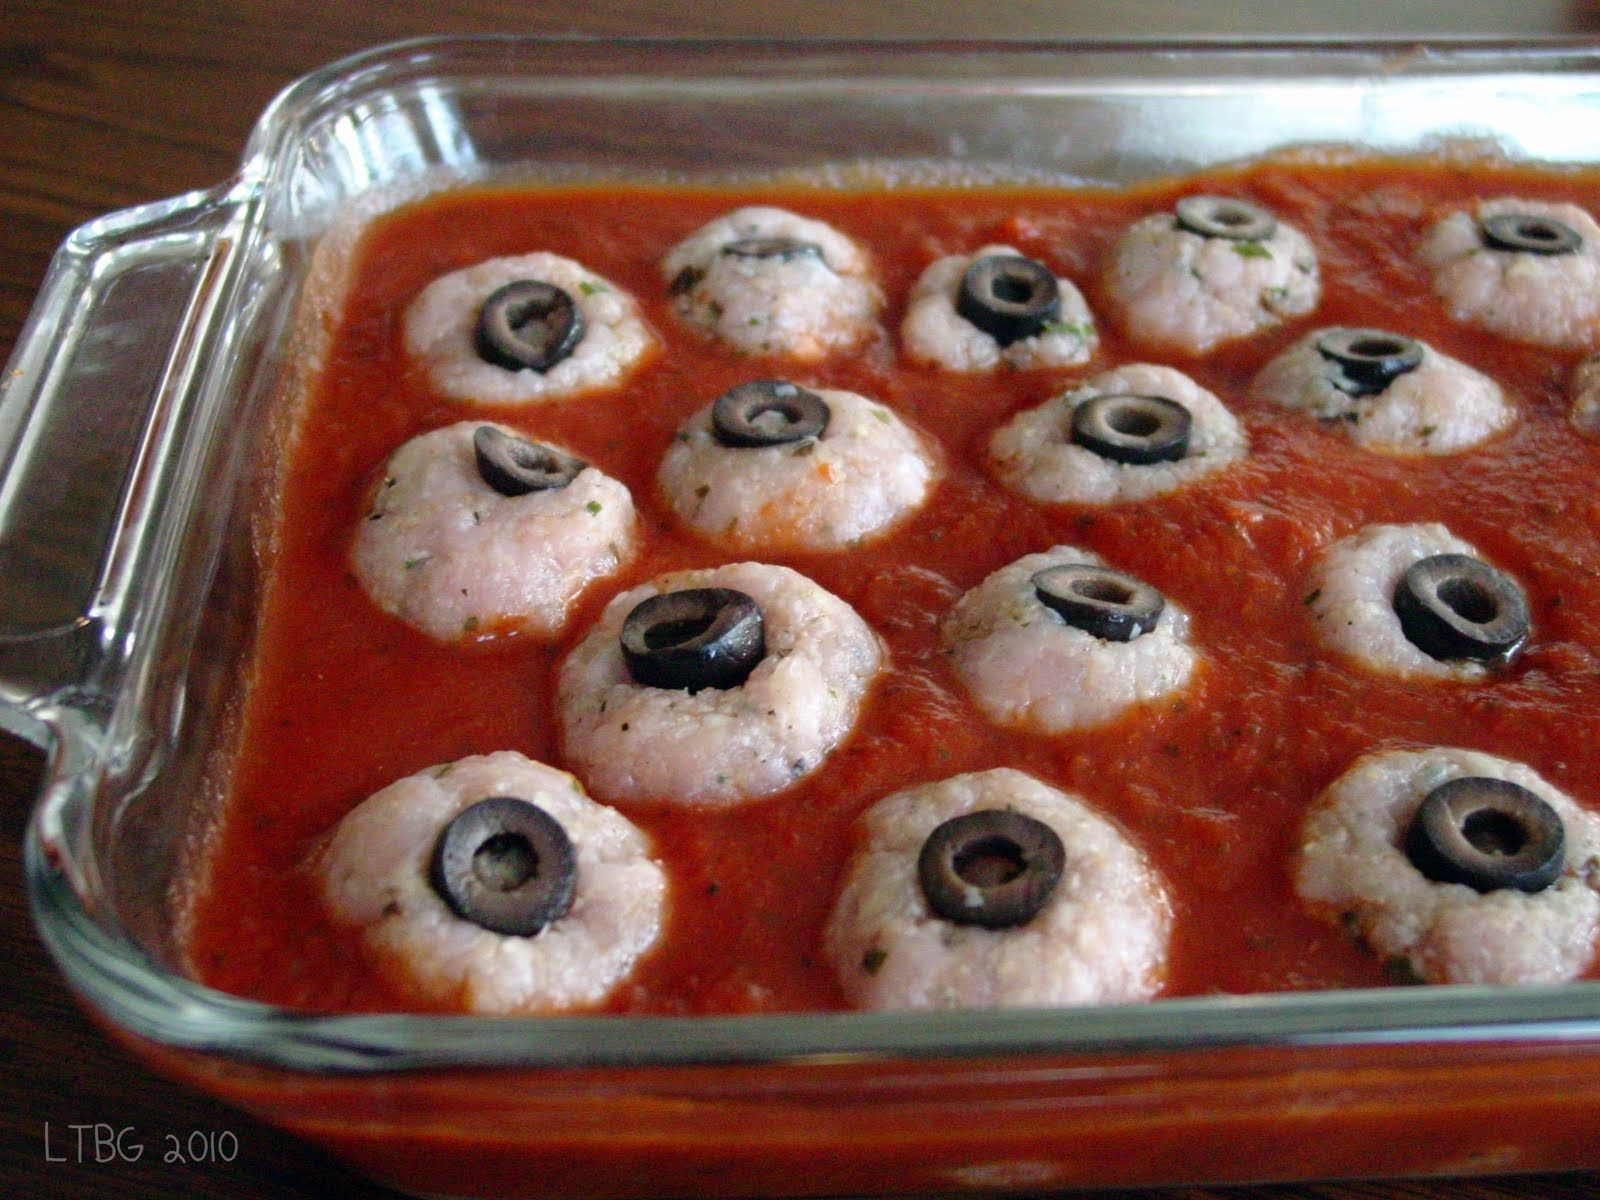 lick the bowl good halloween recipe turkey pesto eyeballsturkey pesto meatball eyes gruesome - Scary Halloween Meatballs